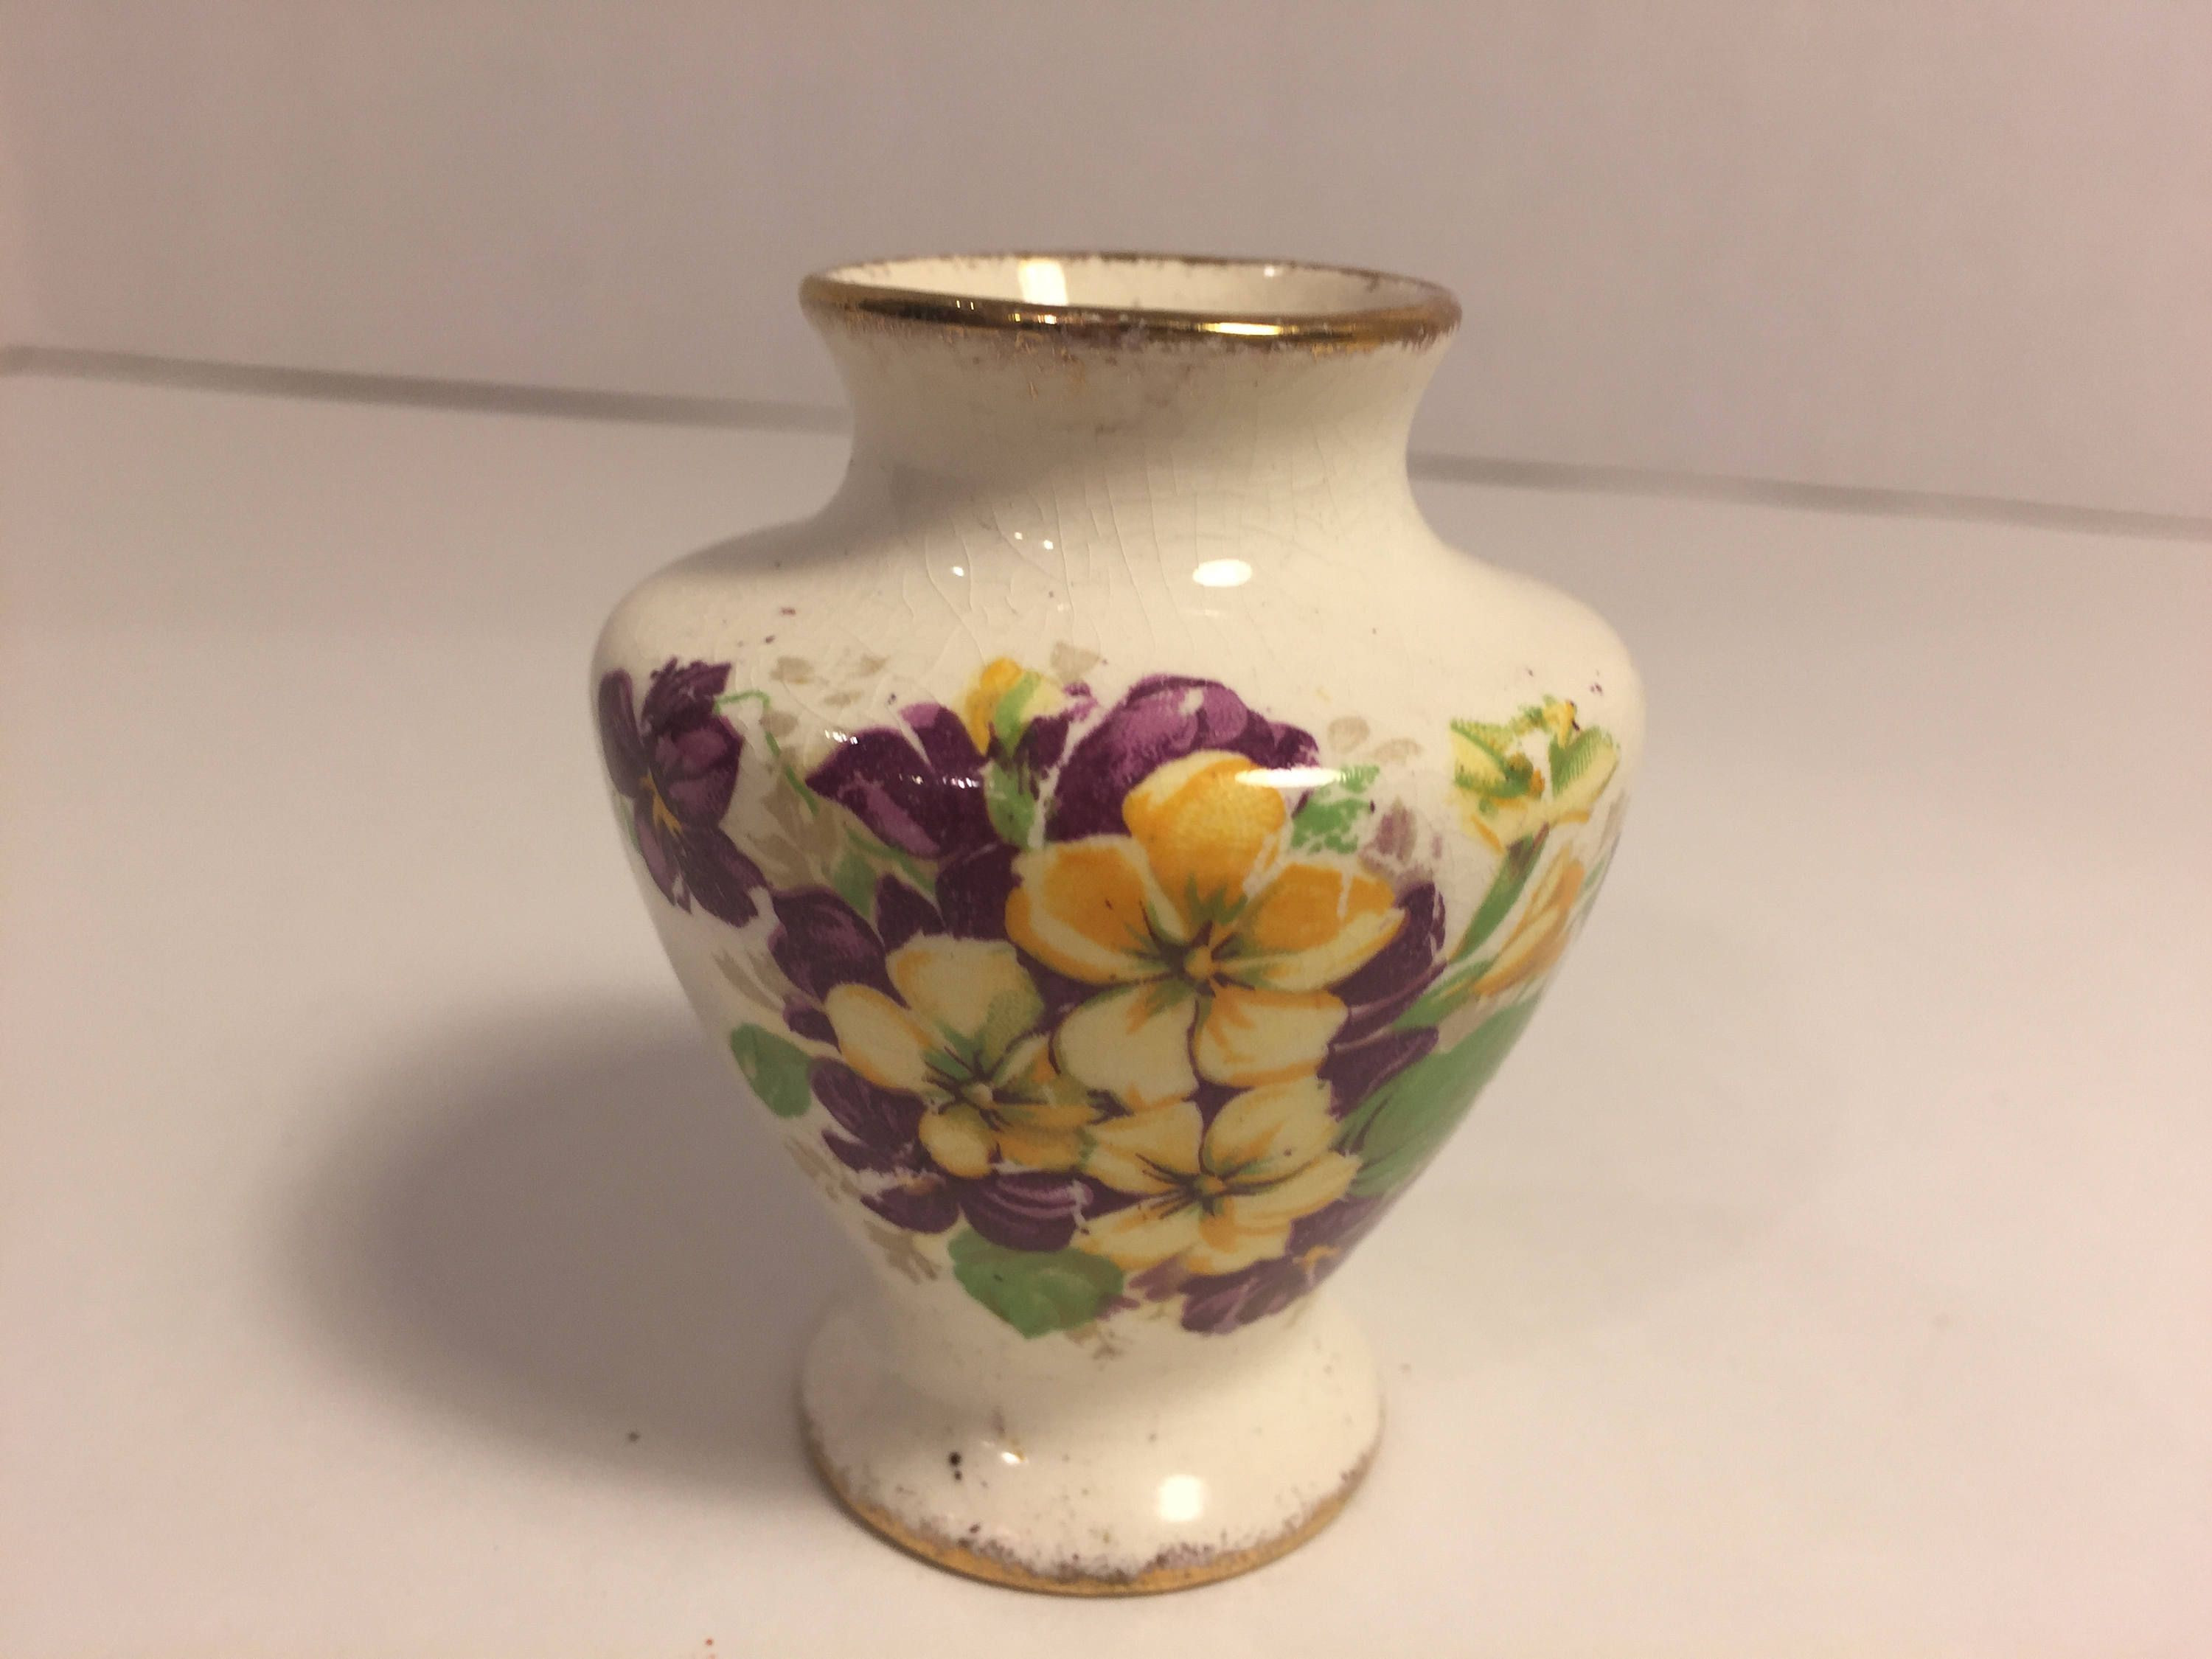 glass vase manufacturers of 21 glass vase with lid the weekly world inside miniature vase james kent ltd longton 4002 made in england